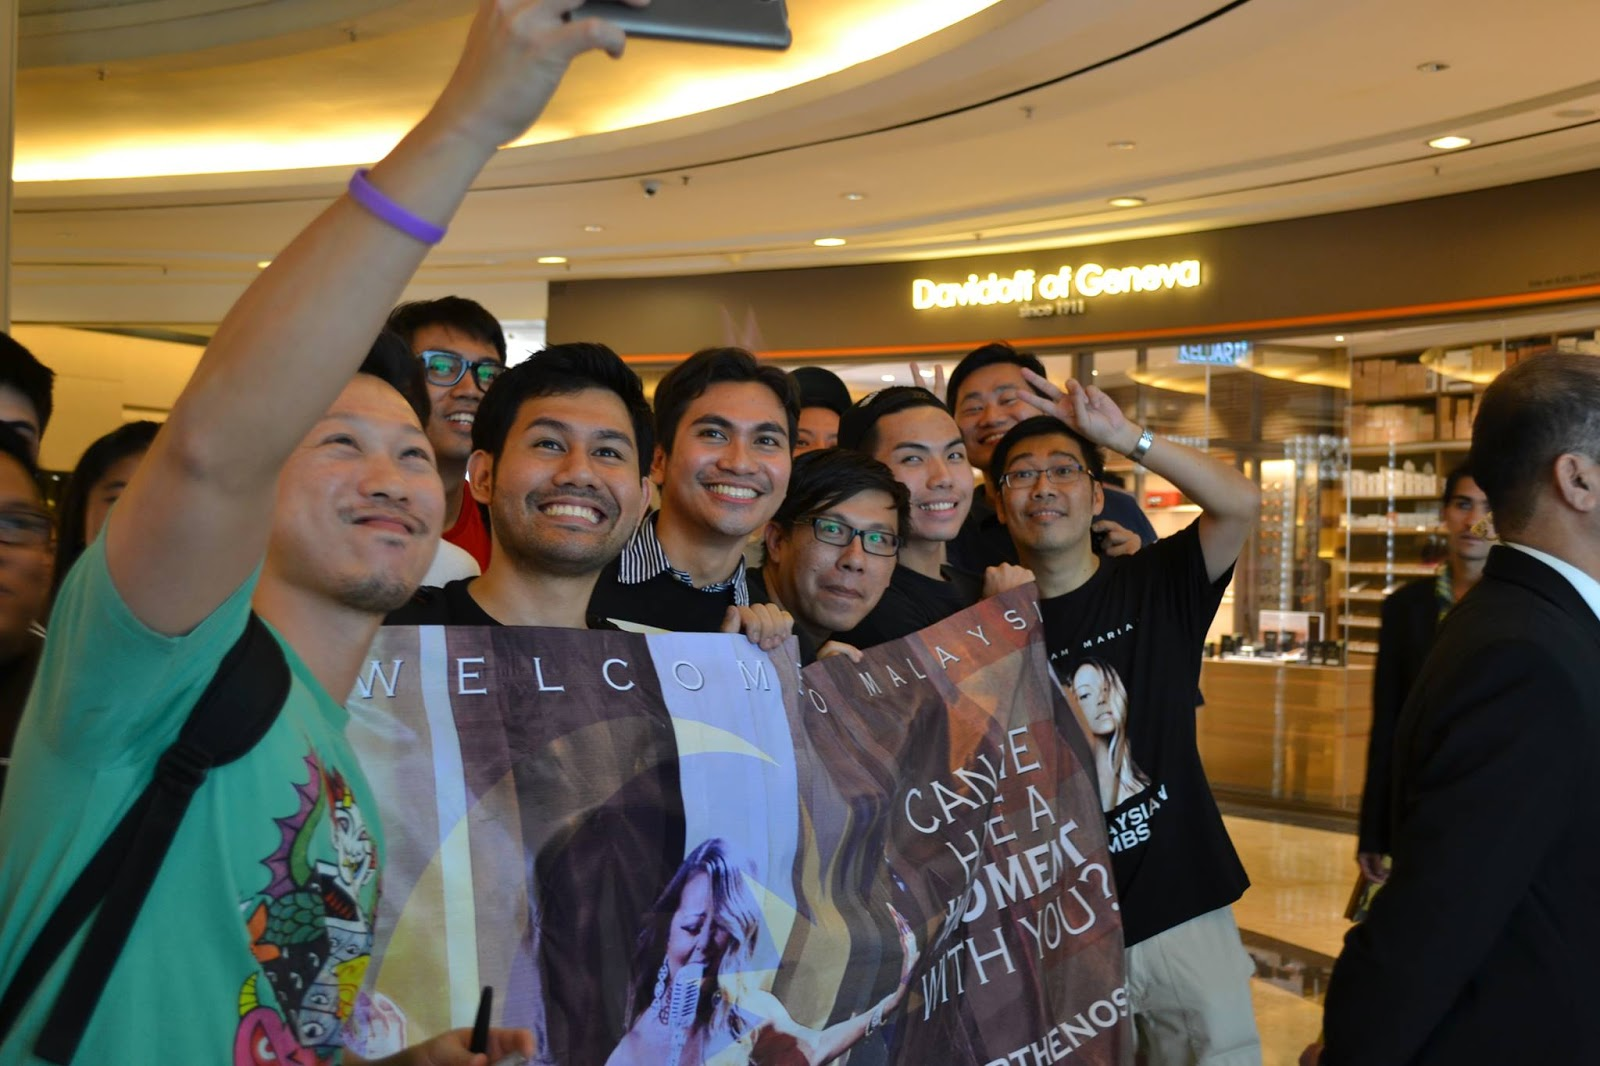 Mariah Carey - Lambs of Asia To The World made an attempt to meet Mariah Carey in KL yesterday